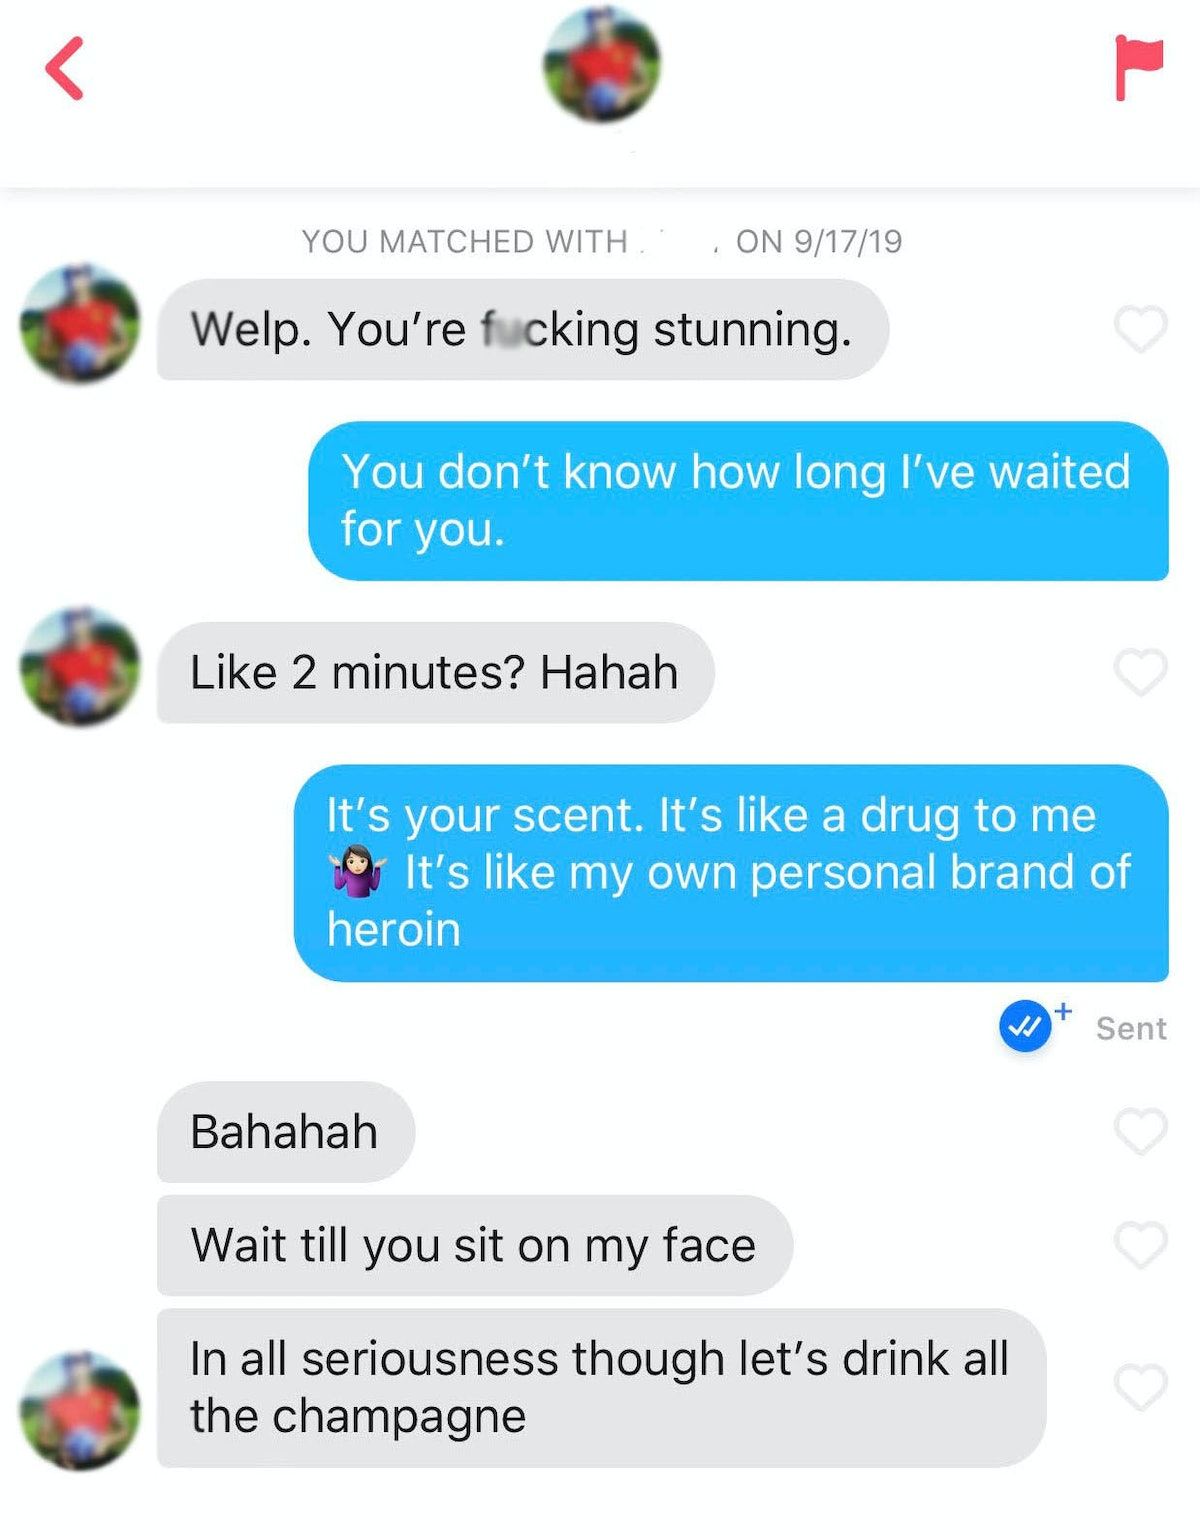 Sending Twilight quotes to Tinder matches doesn't always work.